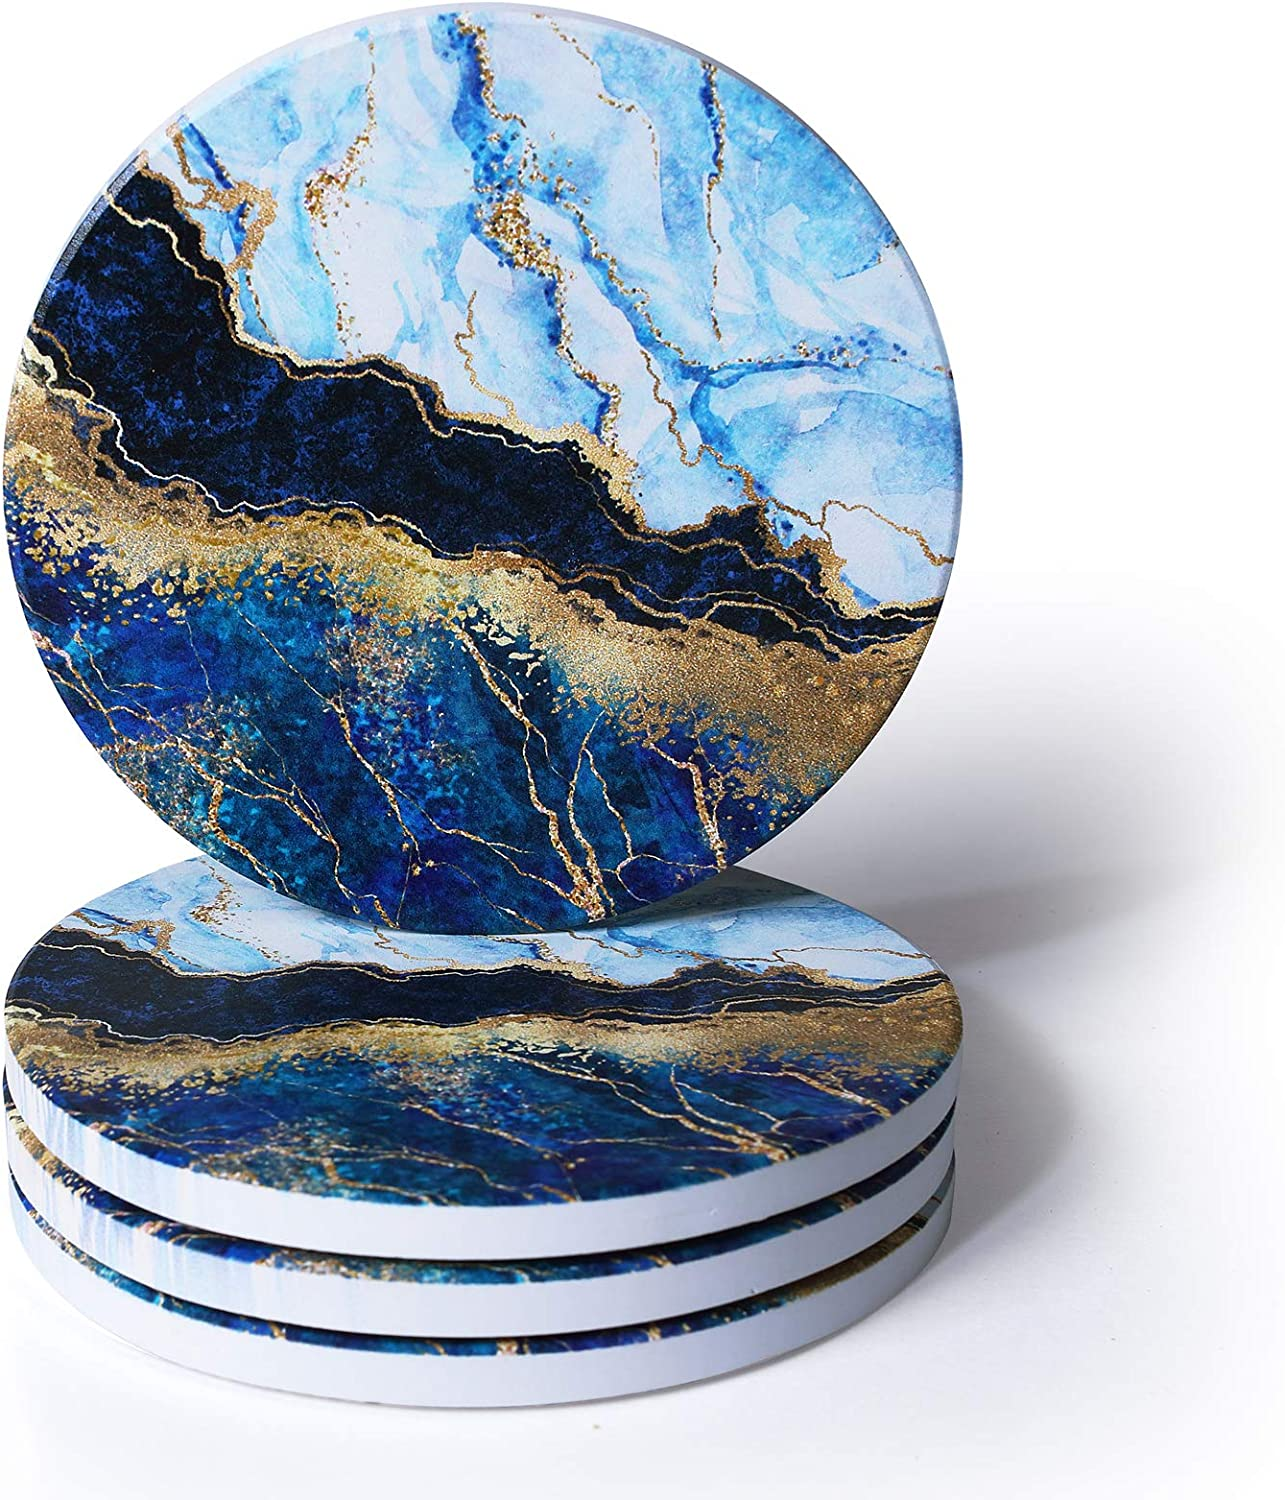 RoomTalks Turquoise and Gold Marble Coasters for Drinks Absorbent 4PCS Modern Abstract Ceramic Coaster Set Cork Back Glitter Rock Stone Coasters for Wooden / Coffee Table (Turquoise, 4 Pieces)